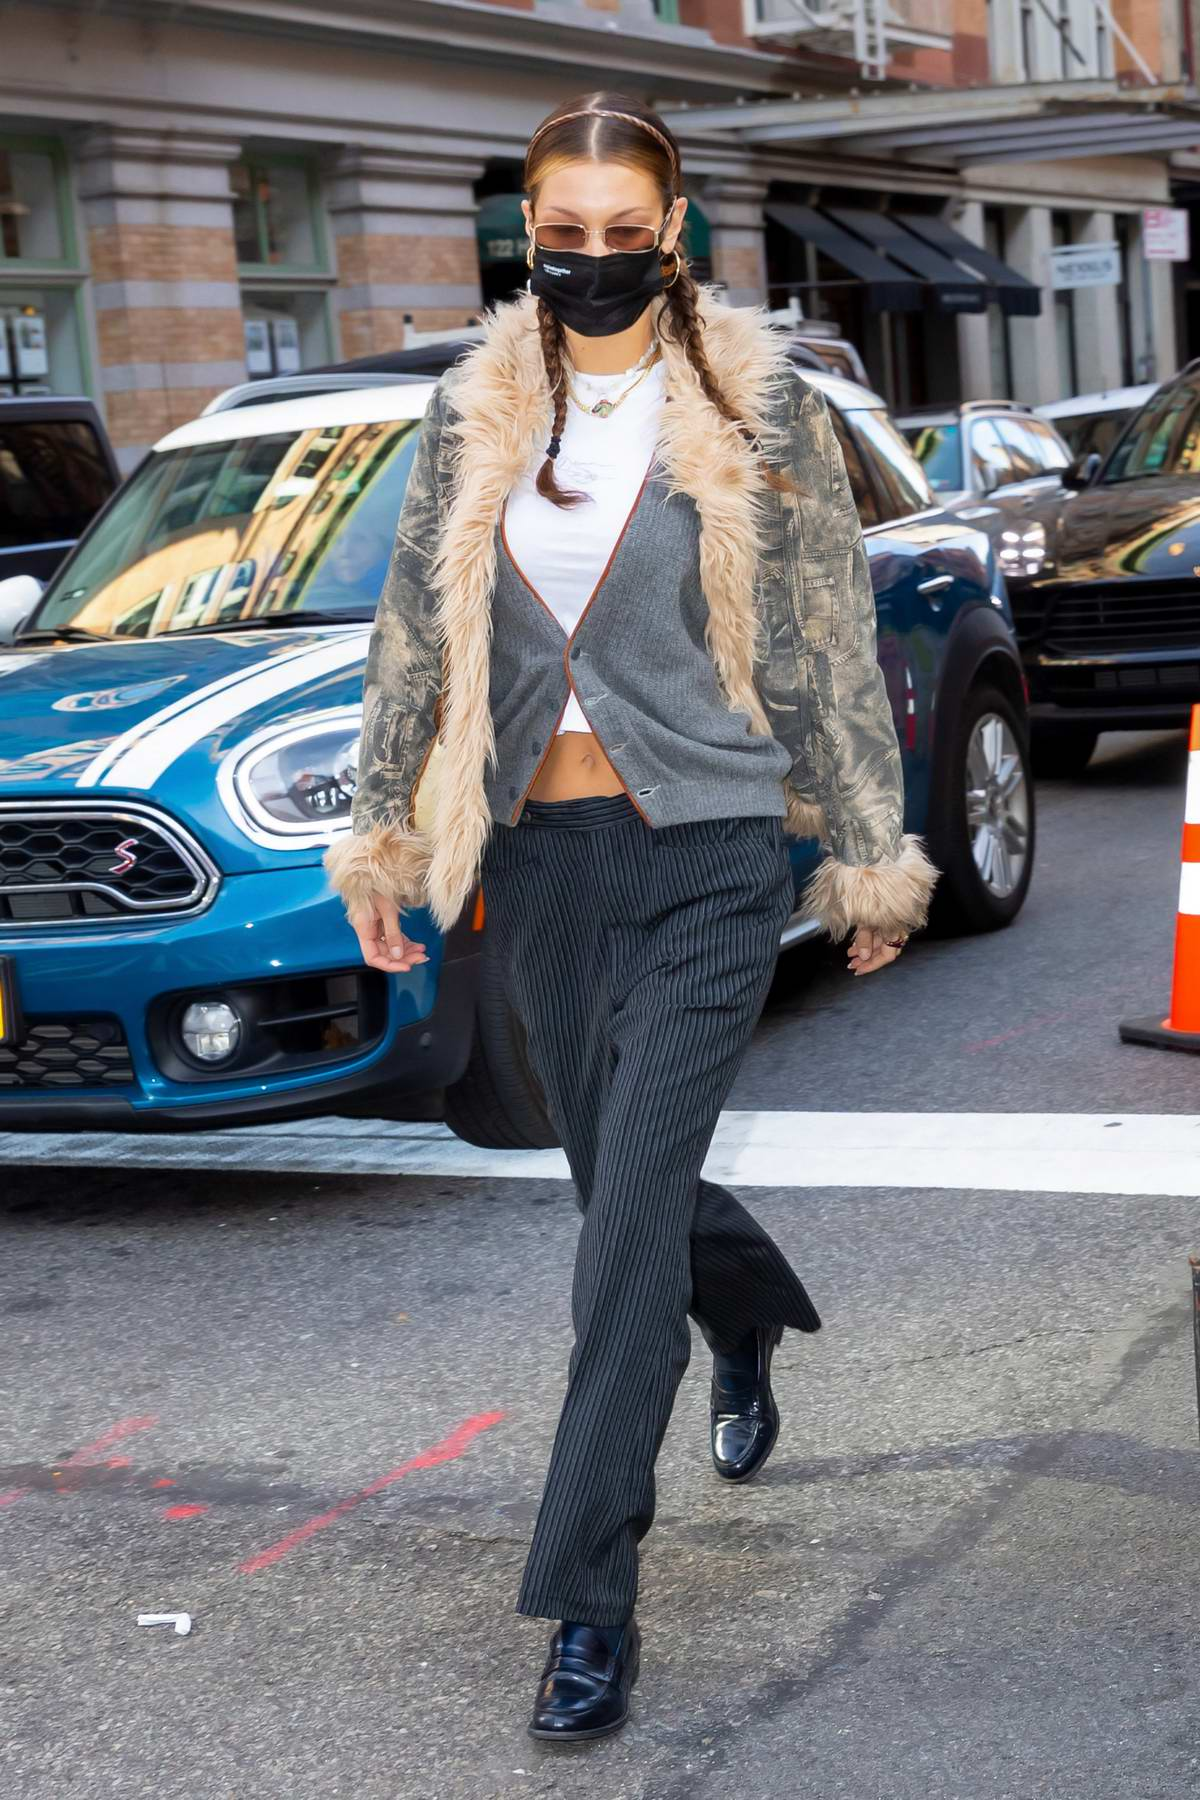 Bella Hadid rocks a fur-lined jacket while out for lunch with Kendall Jenner at Bubby's in Tribeca, New York City